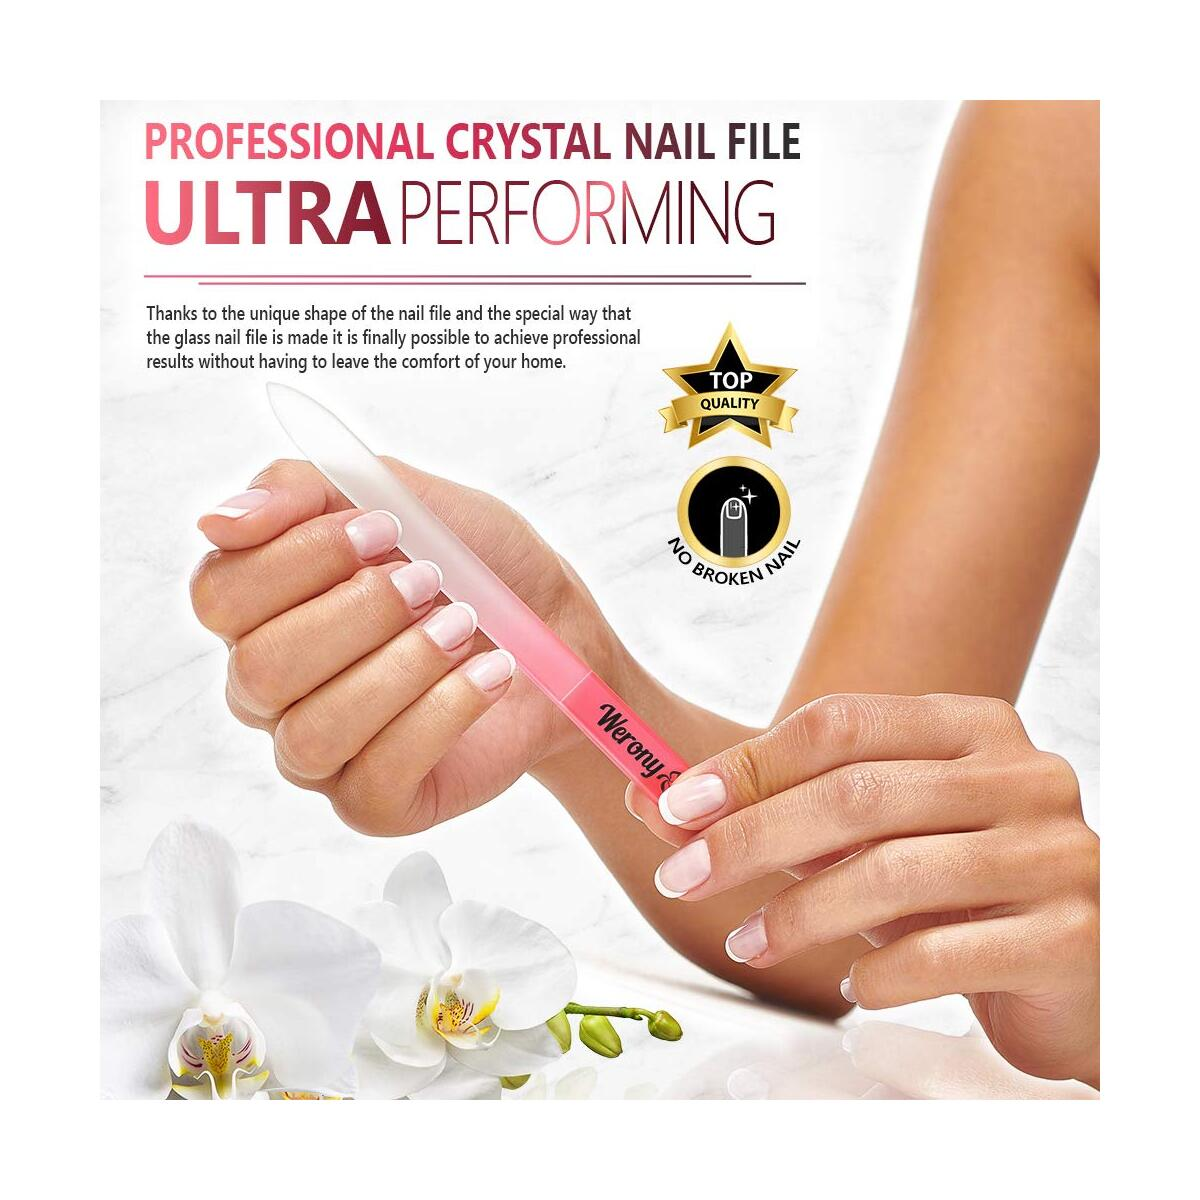 Glass Nail File - Manicure Nail Care - NEW COLOR - Premium Fingernail File for Natural Nails - Crystal Nail File for Women Perfect Choice from Nail Accessories